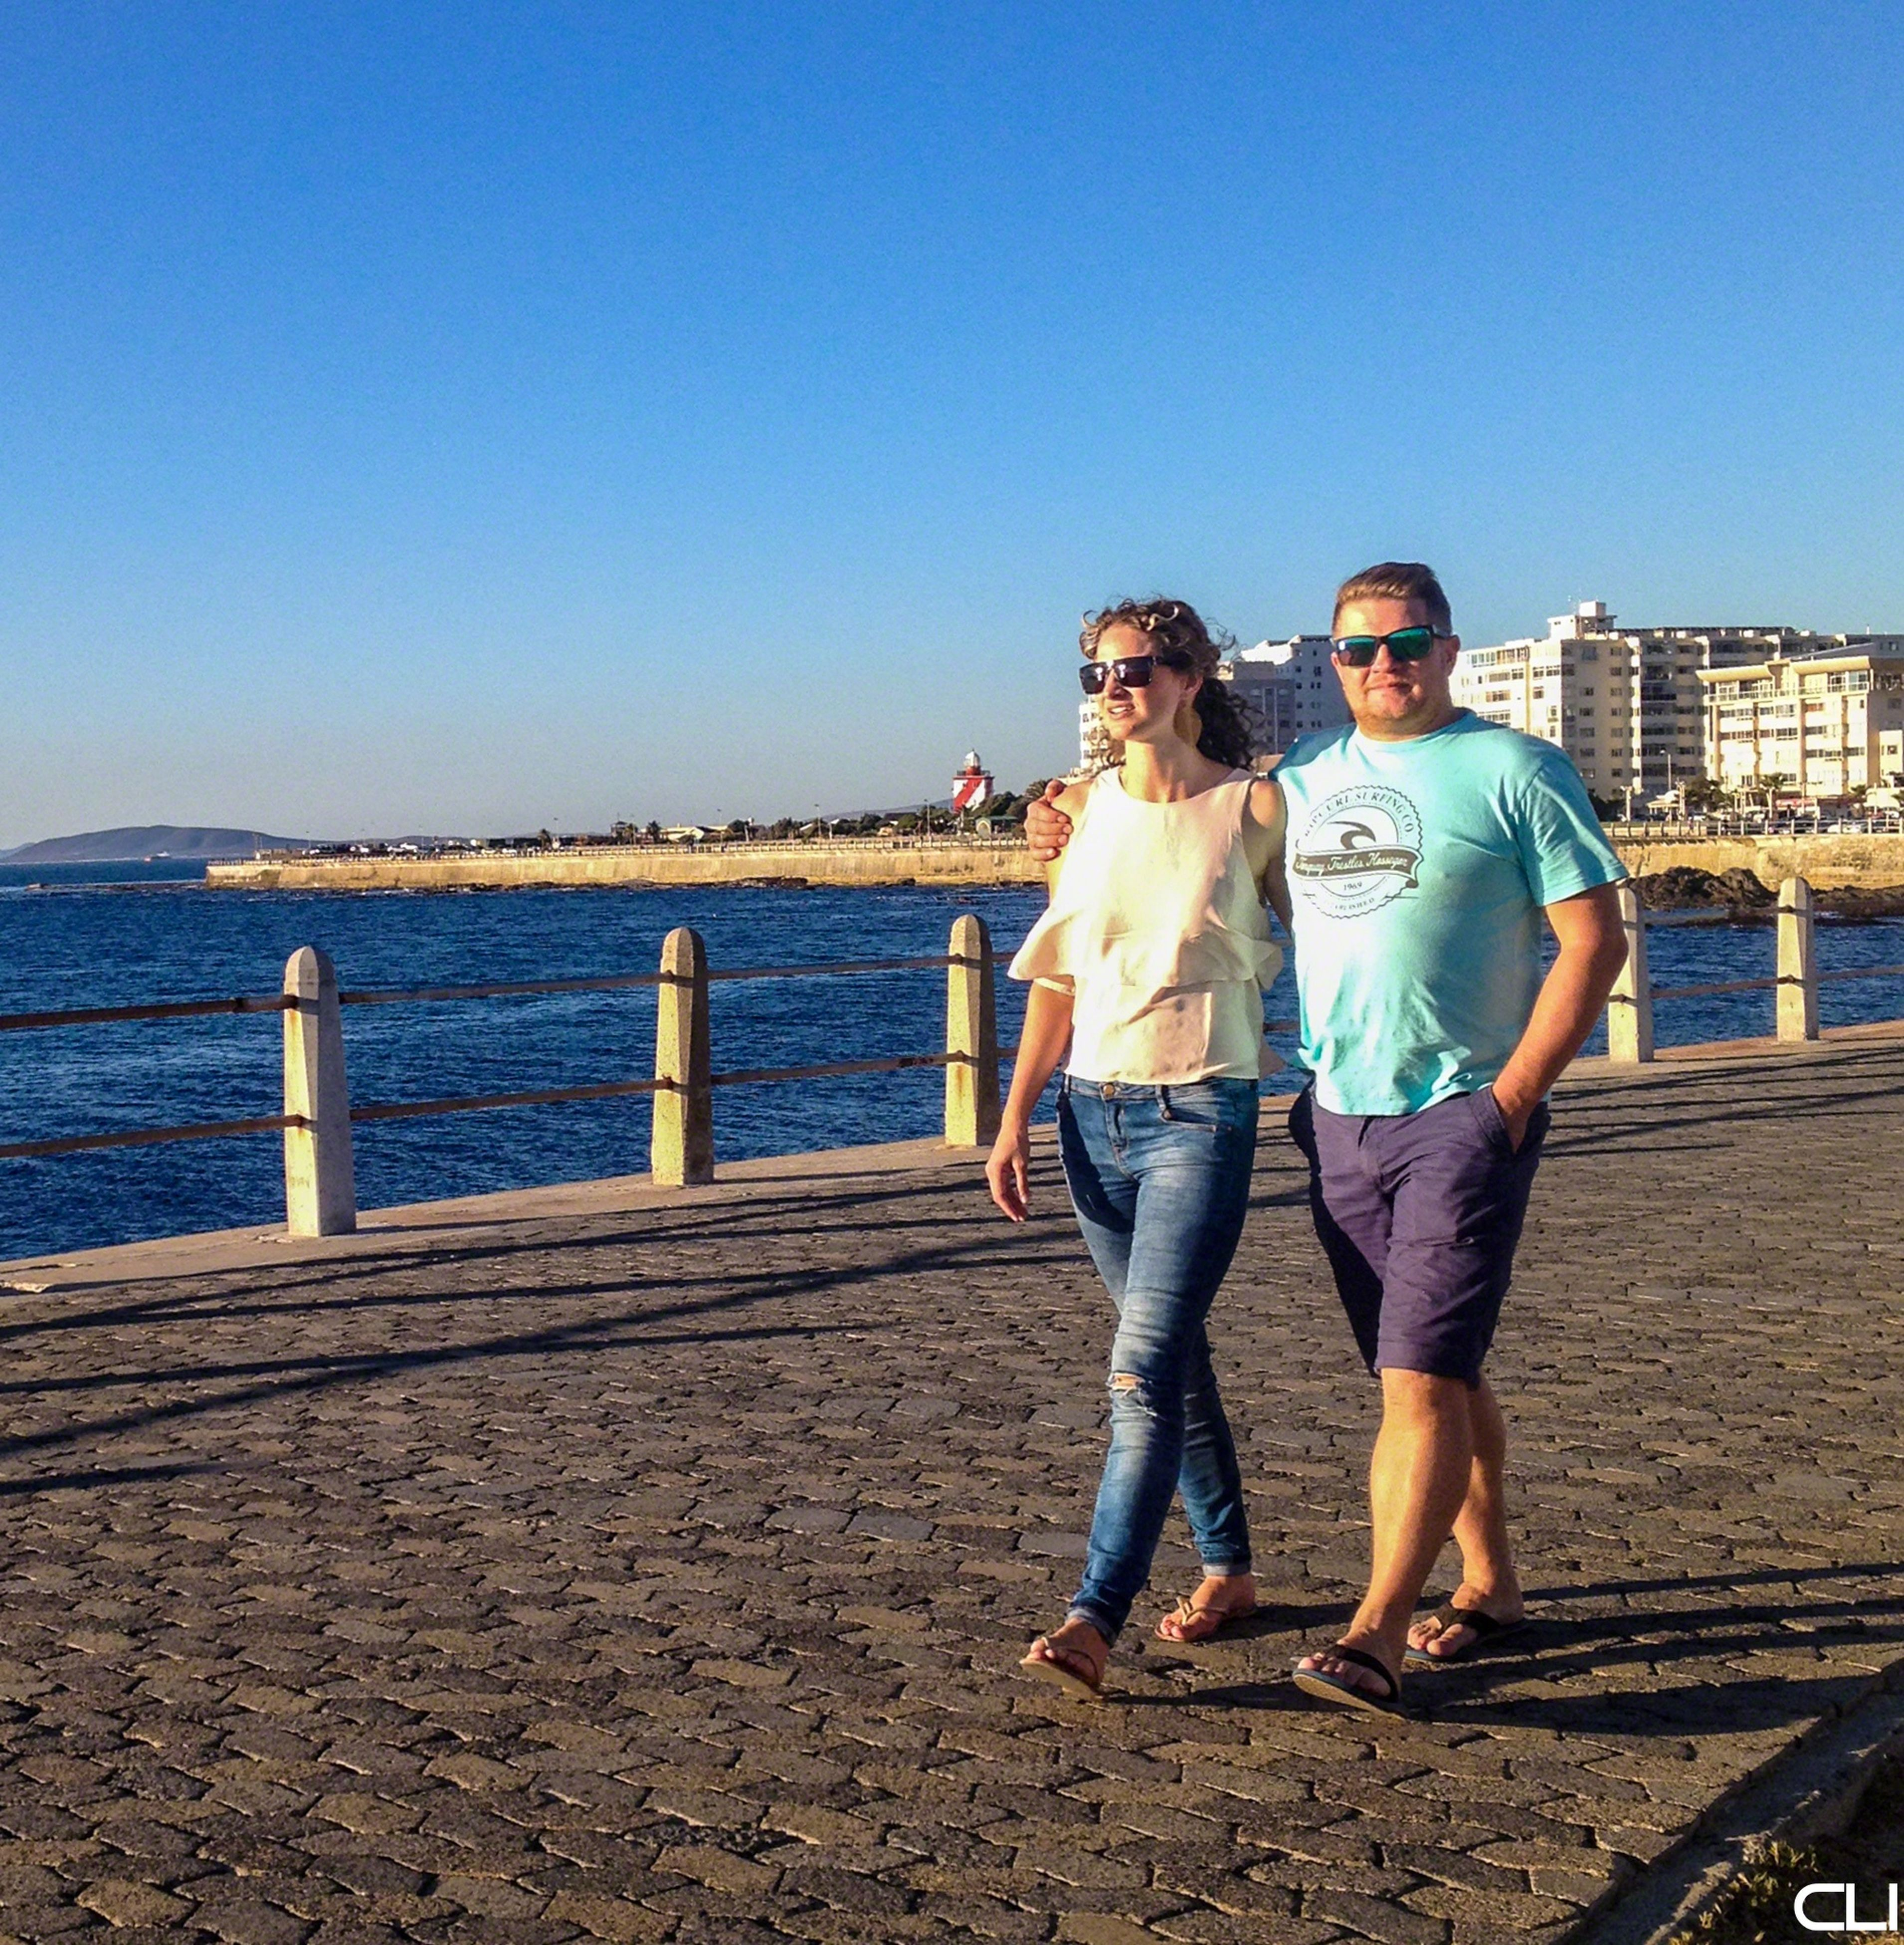 clear sky, lifestyles, full length, casual clothing, water, leisure activity, standing, copy space, blue, sea, togetherness, rear view, beach, boys, childhood, bonding, person